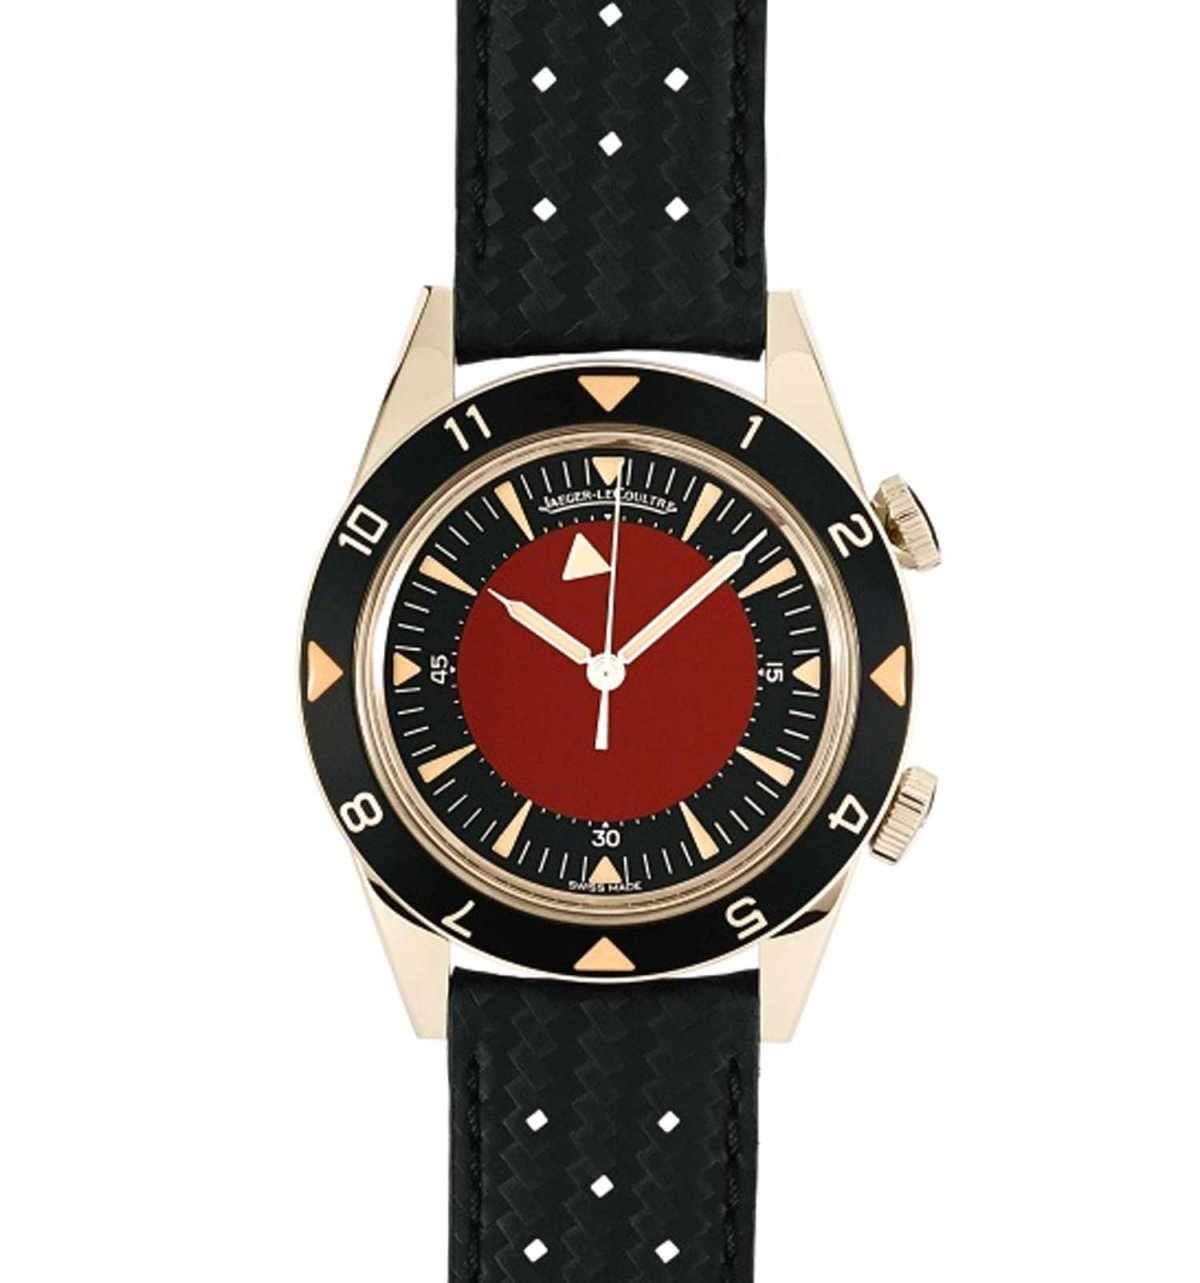 He also designed this Jaeger-LeCoultre watch for an AIDS charity auction.